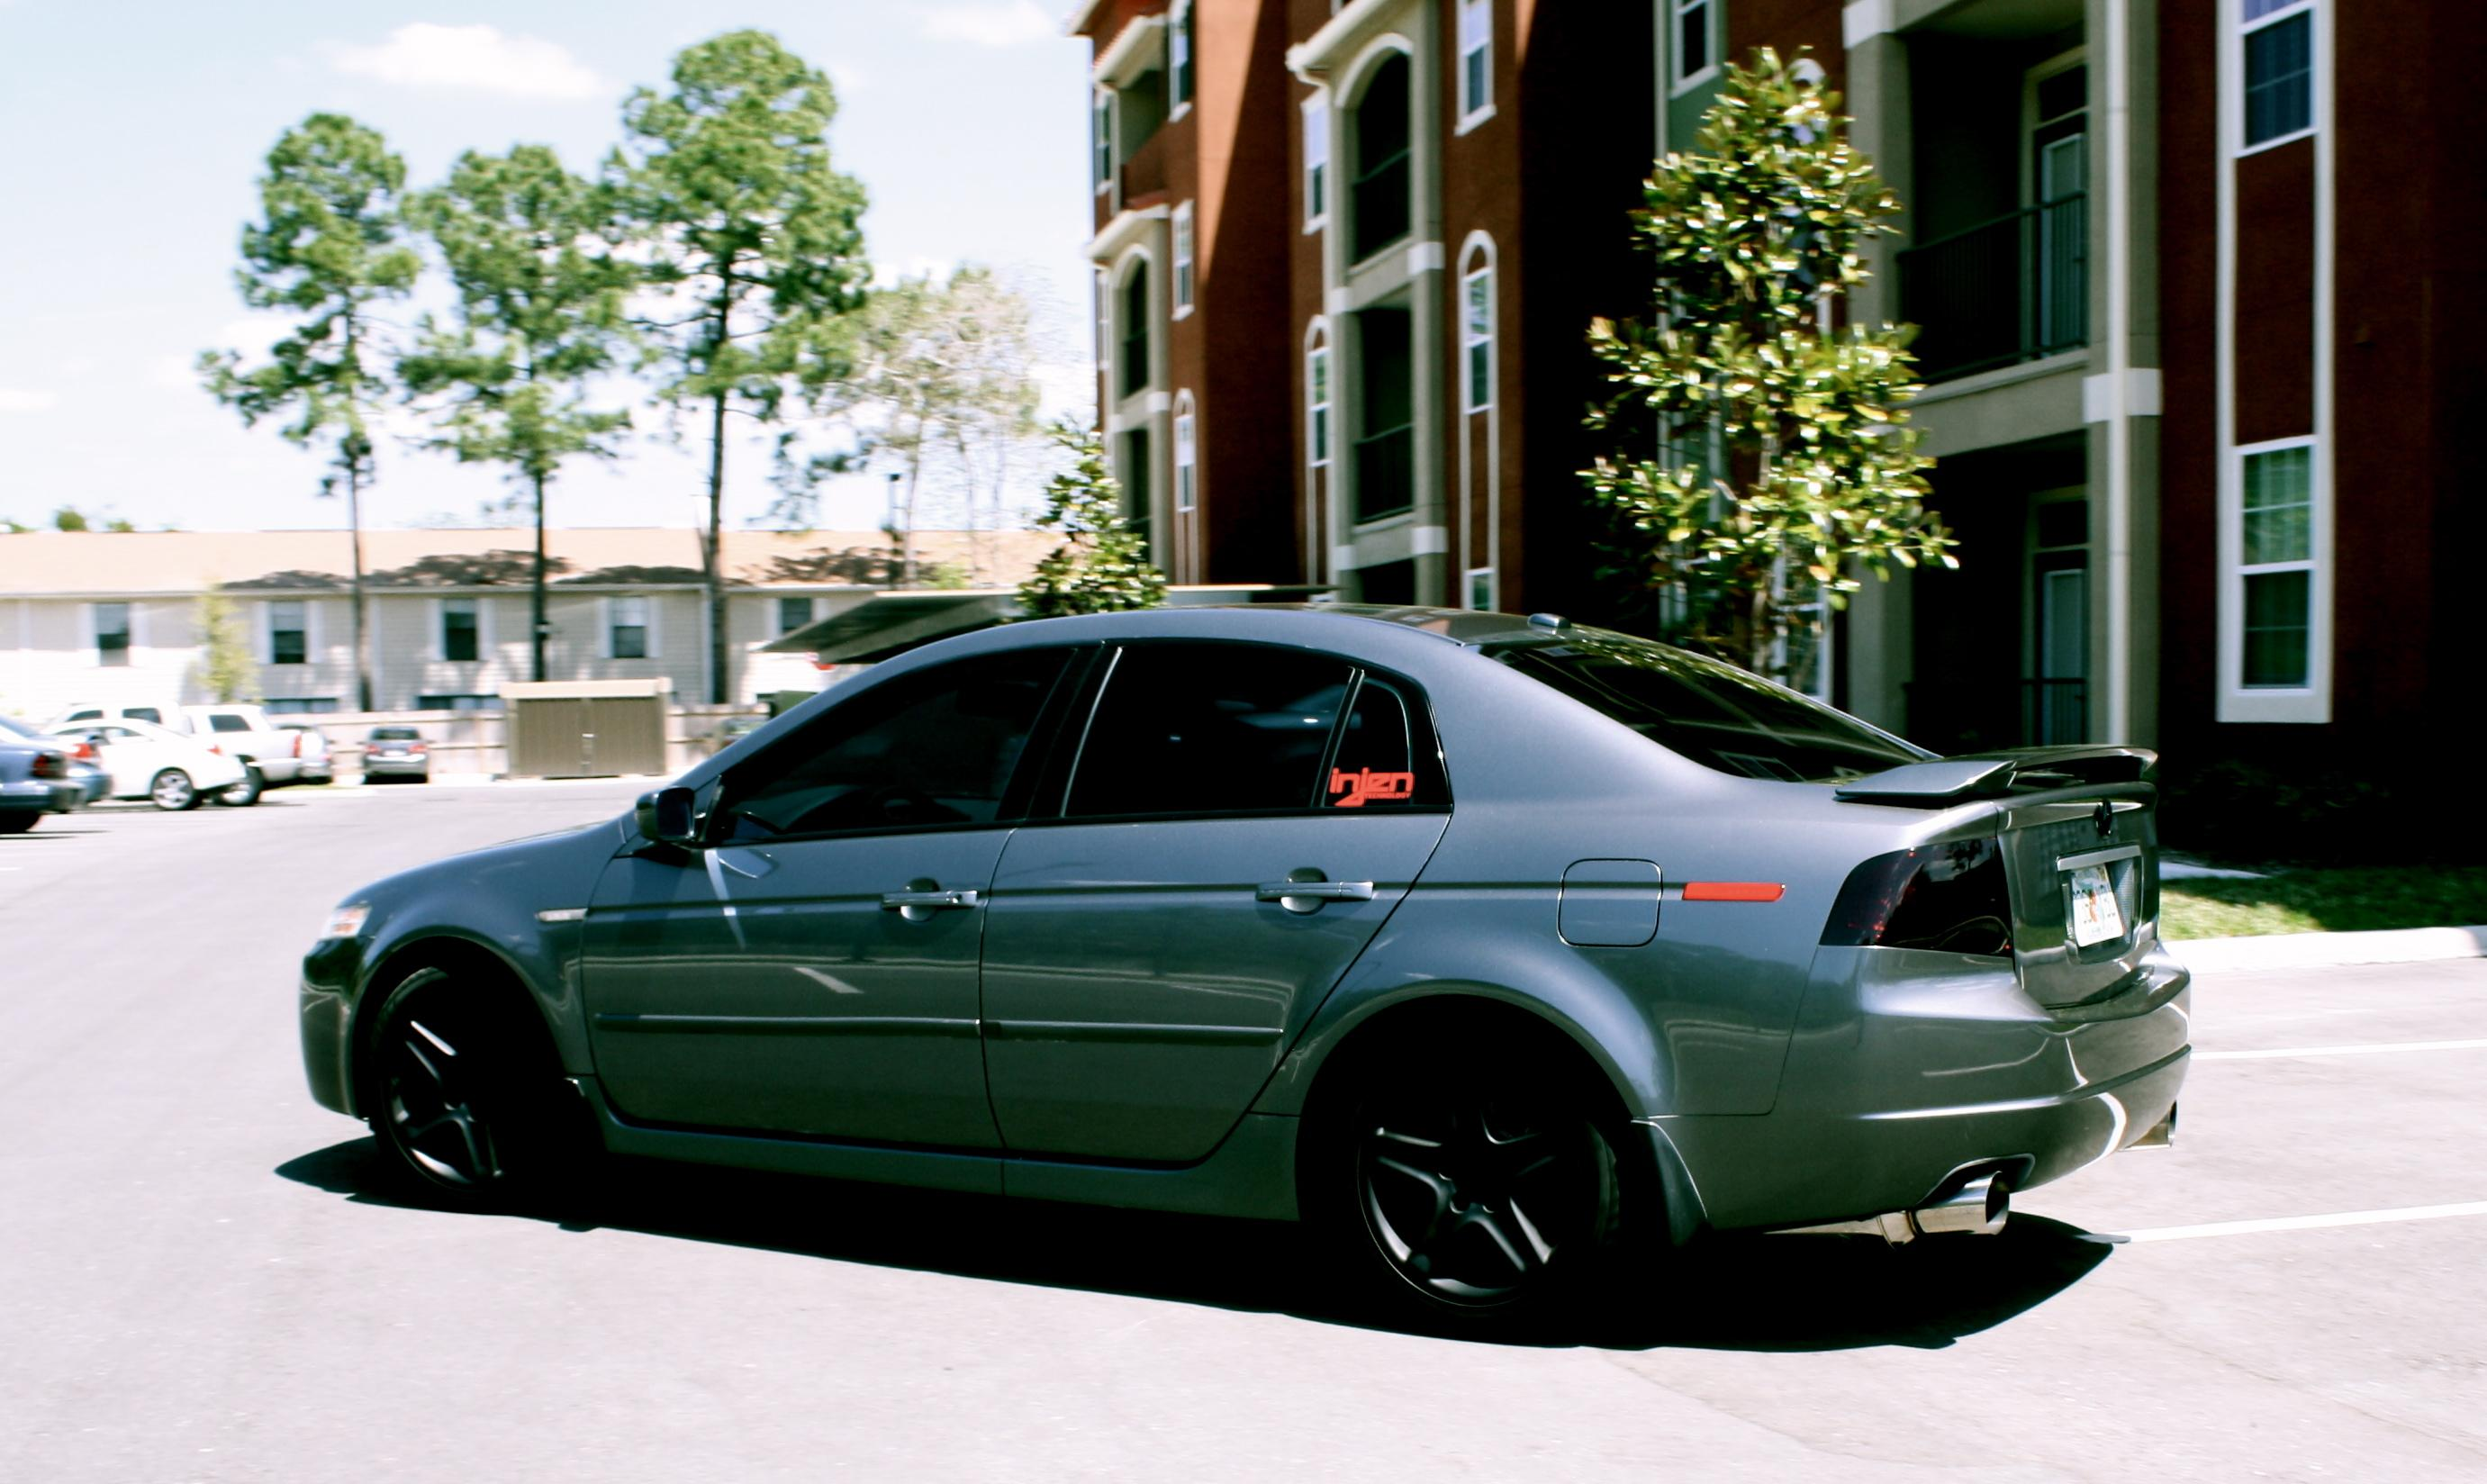 DRS25's 2005 Acura TL